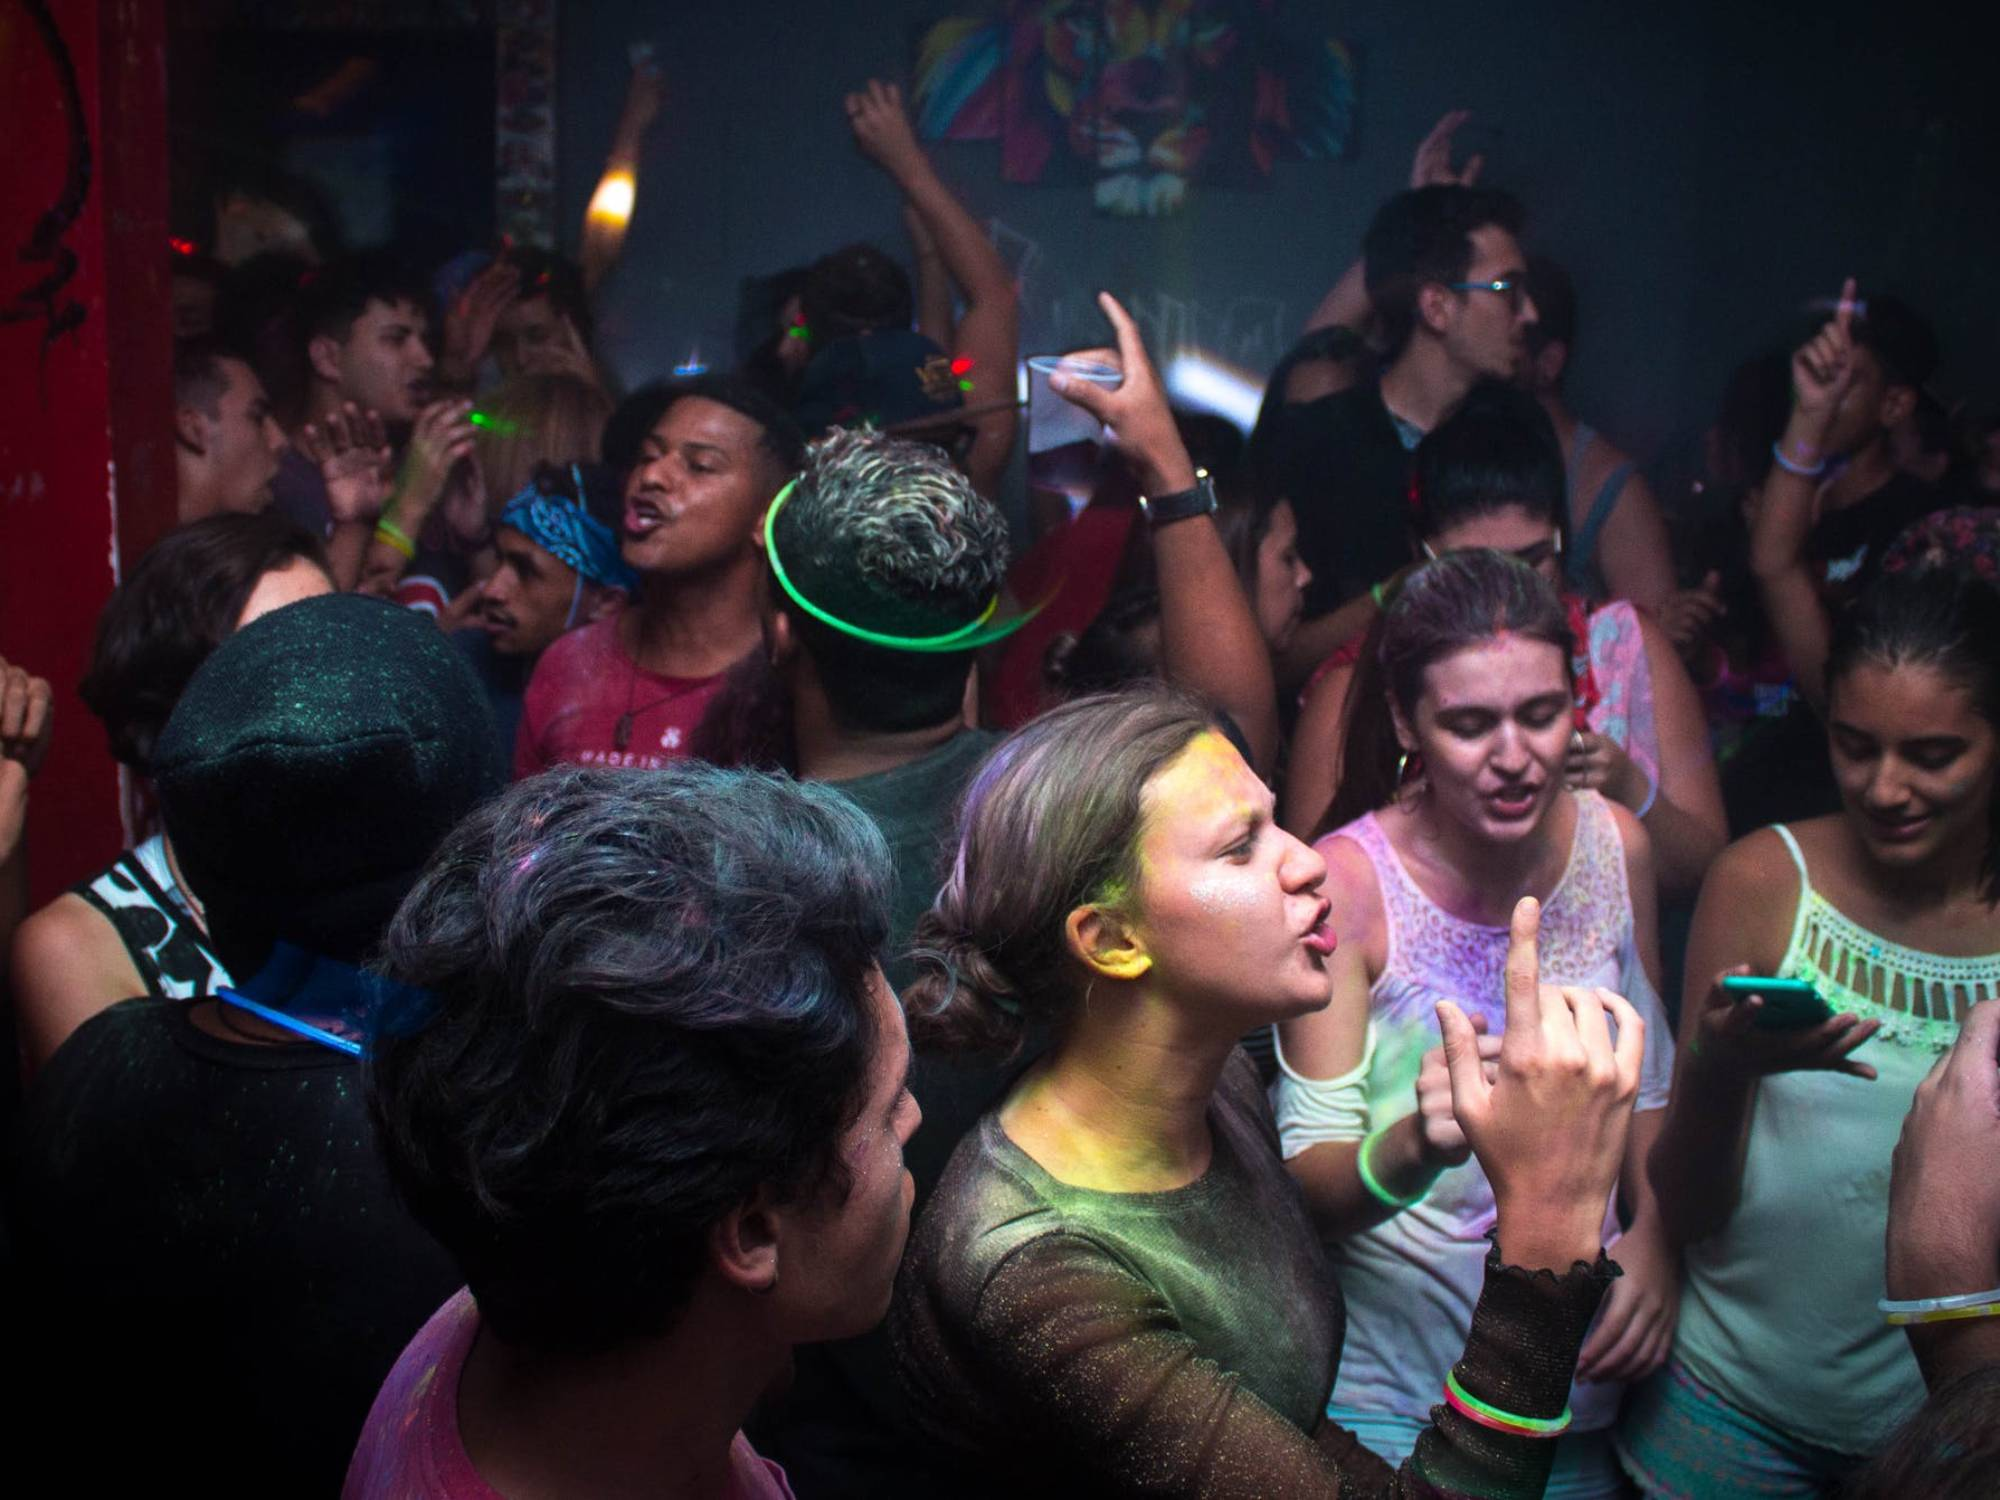 People dancing at house party at night